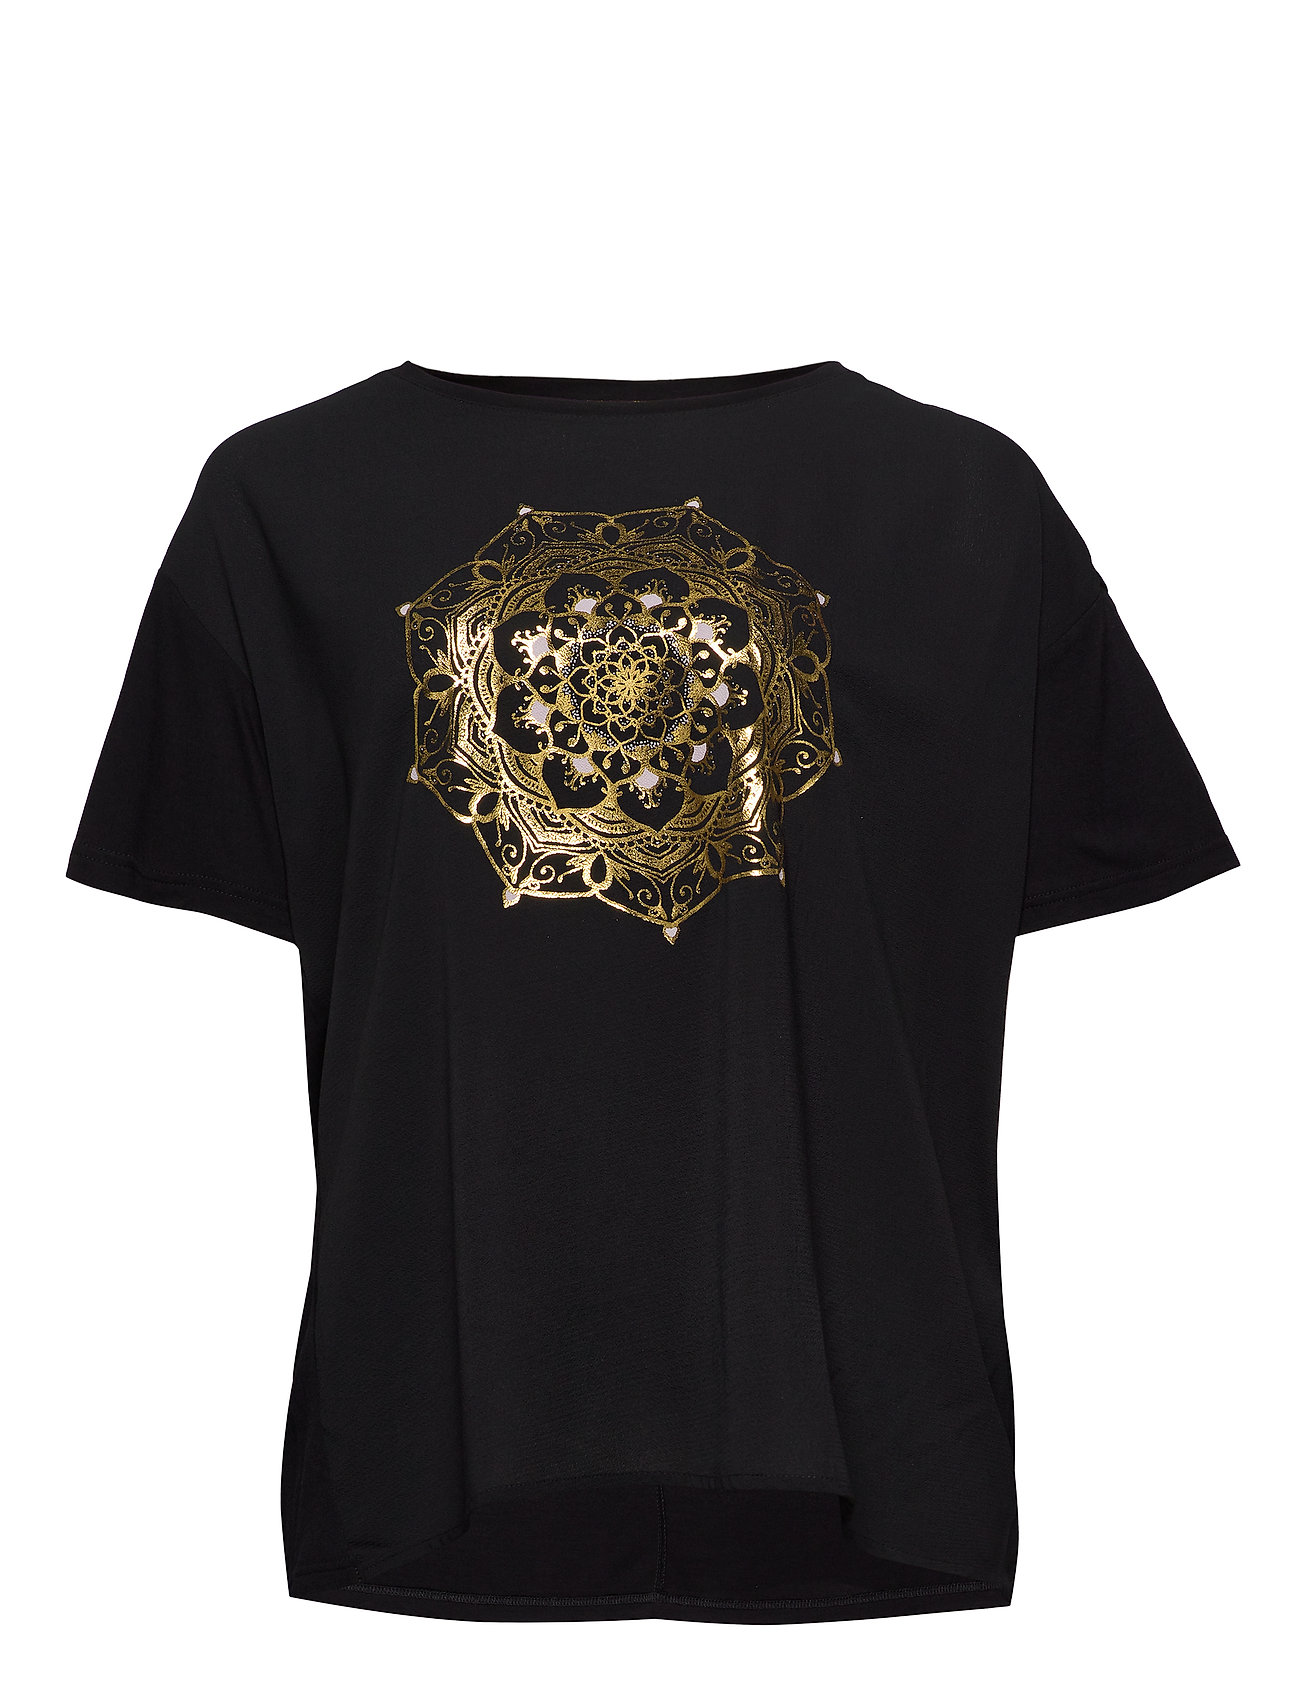 Image of Carart Ss Tee T-shirt Top Sort ONLY Carmakoma (3346638243)